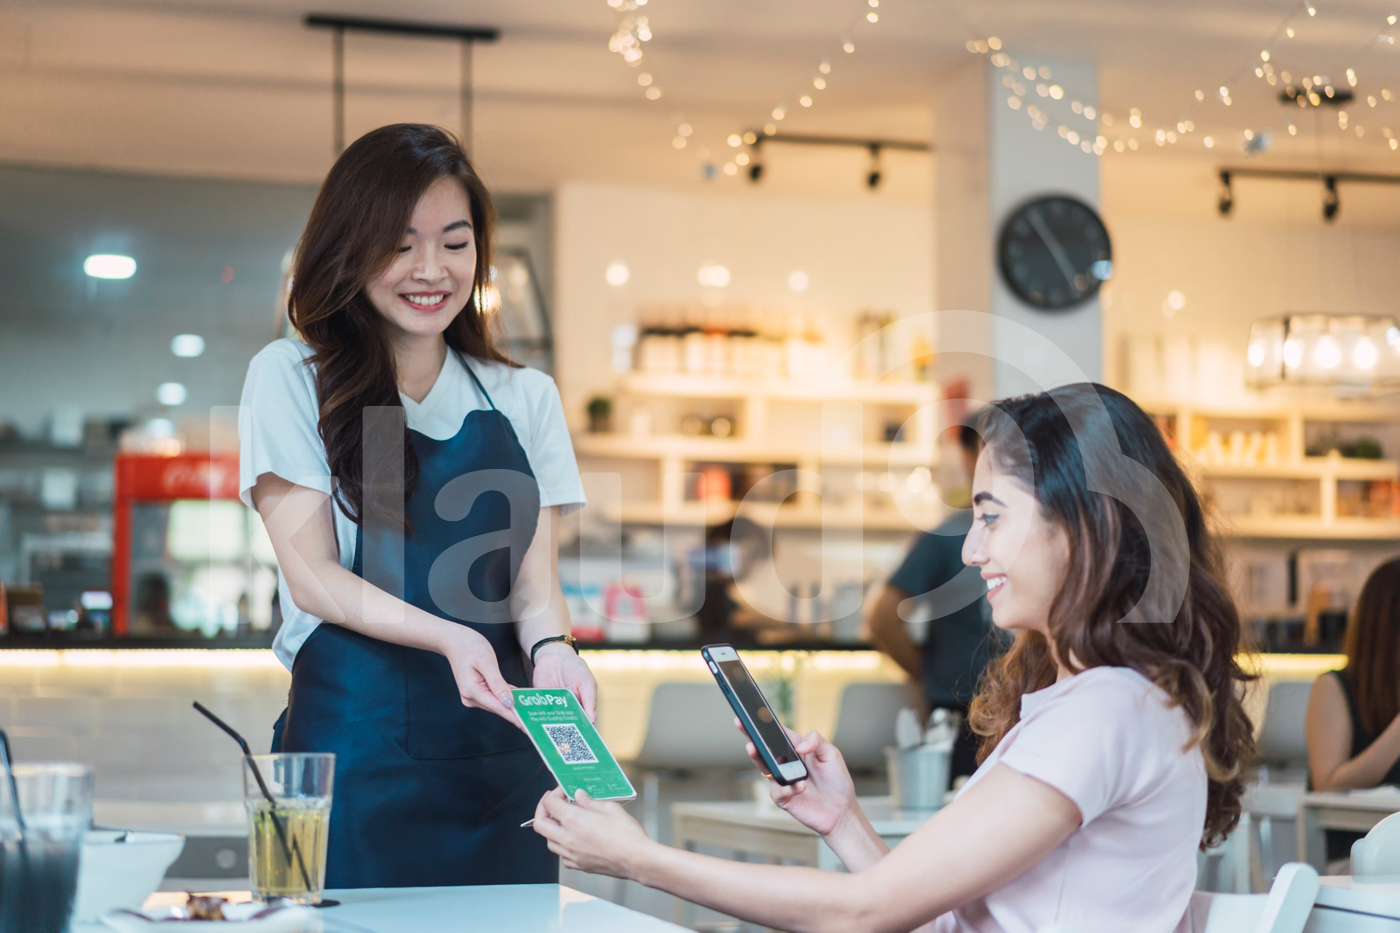 Young Asian woman scanning QR code at table to make payment